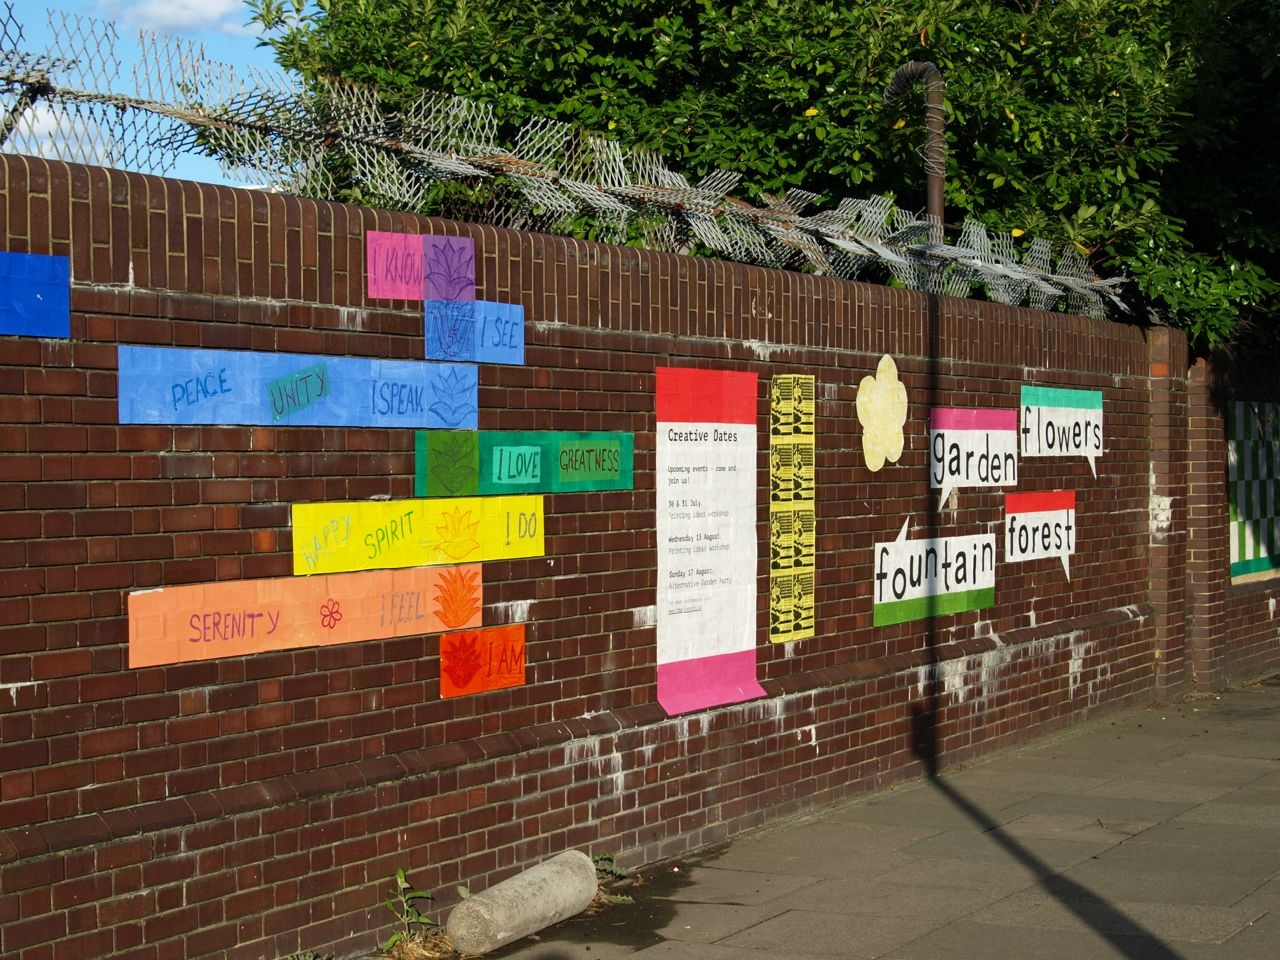 The wall as a calling card